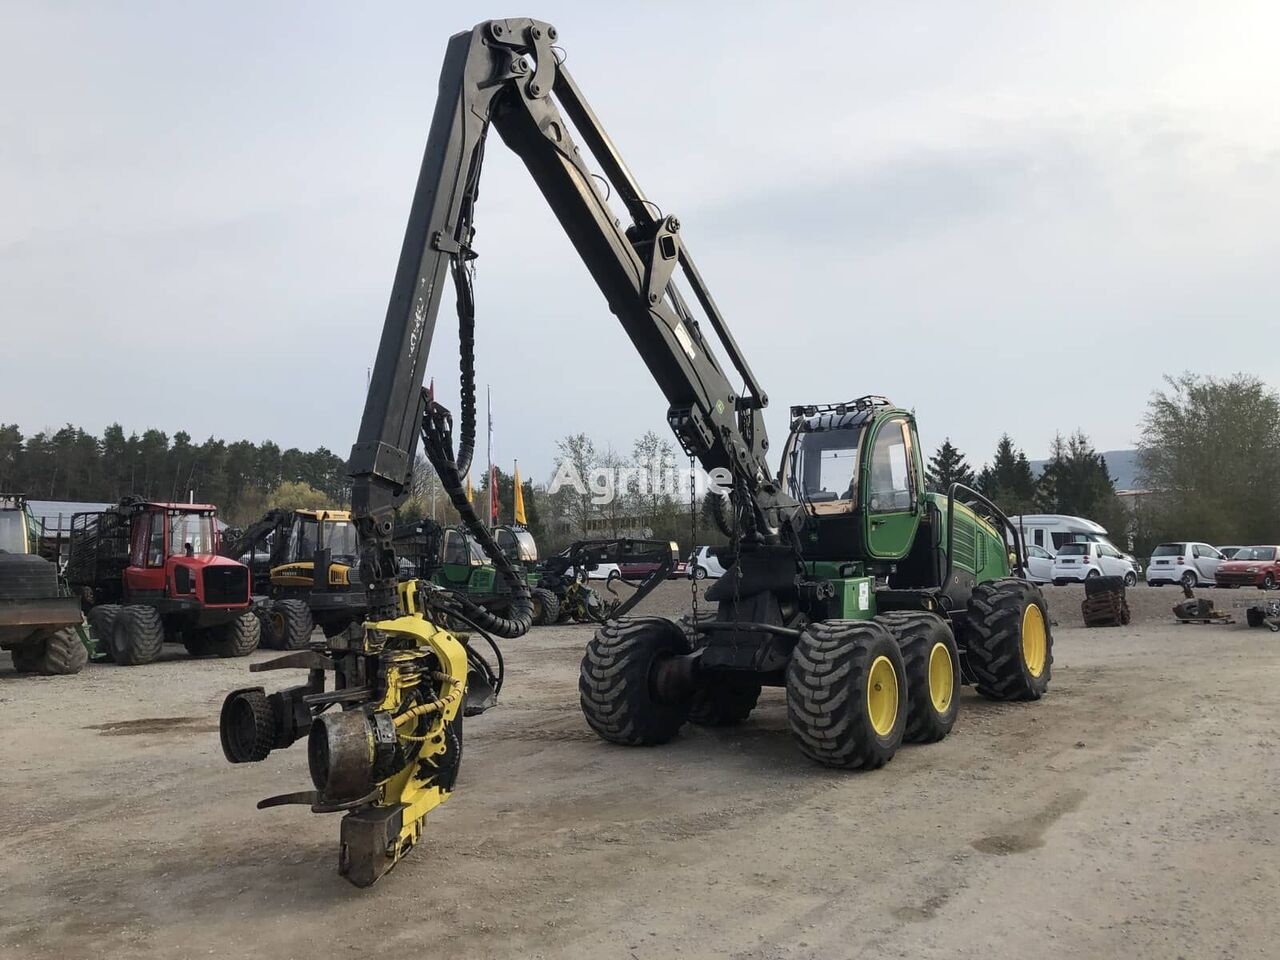 harvester JOHN DEERE 1270E IT4